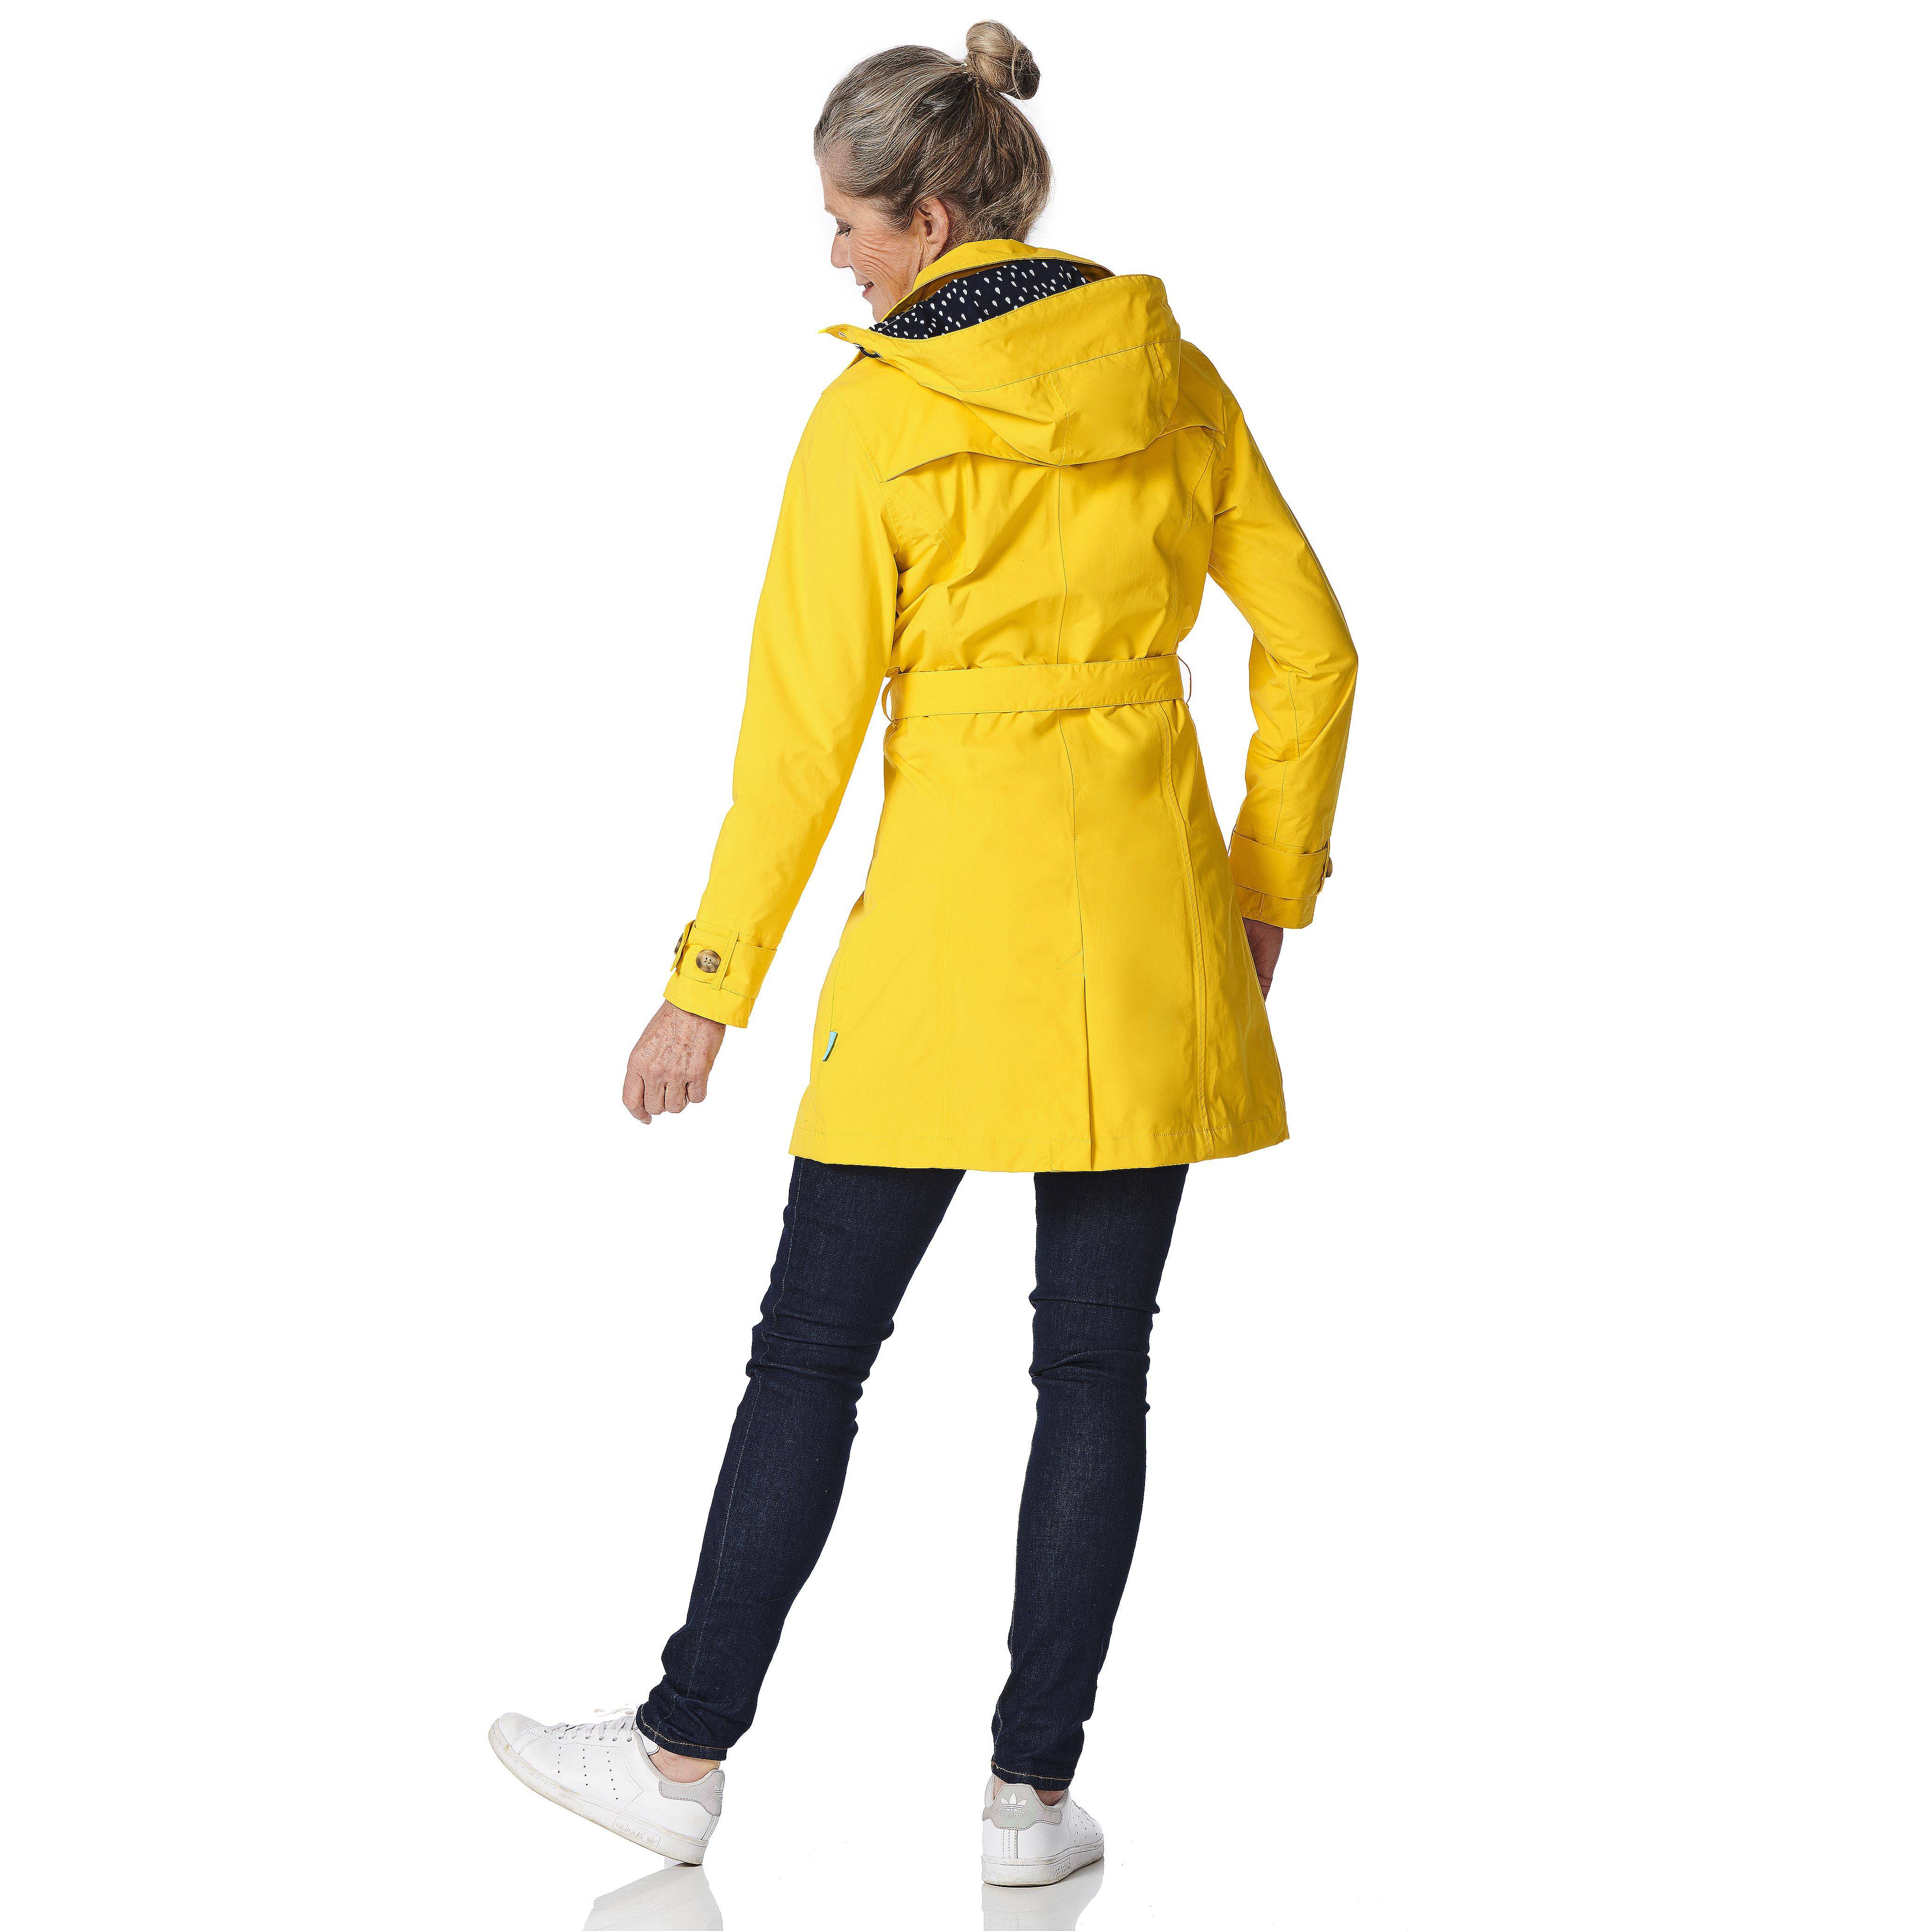 Happy Rainy Days Trench Coat, Yellow, Color: Yellow, Size: L image 4